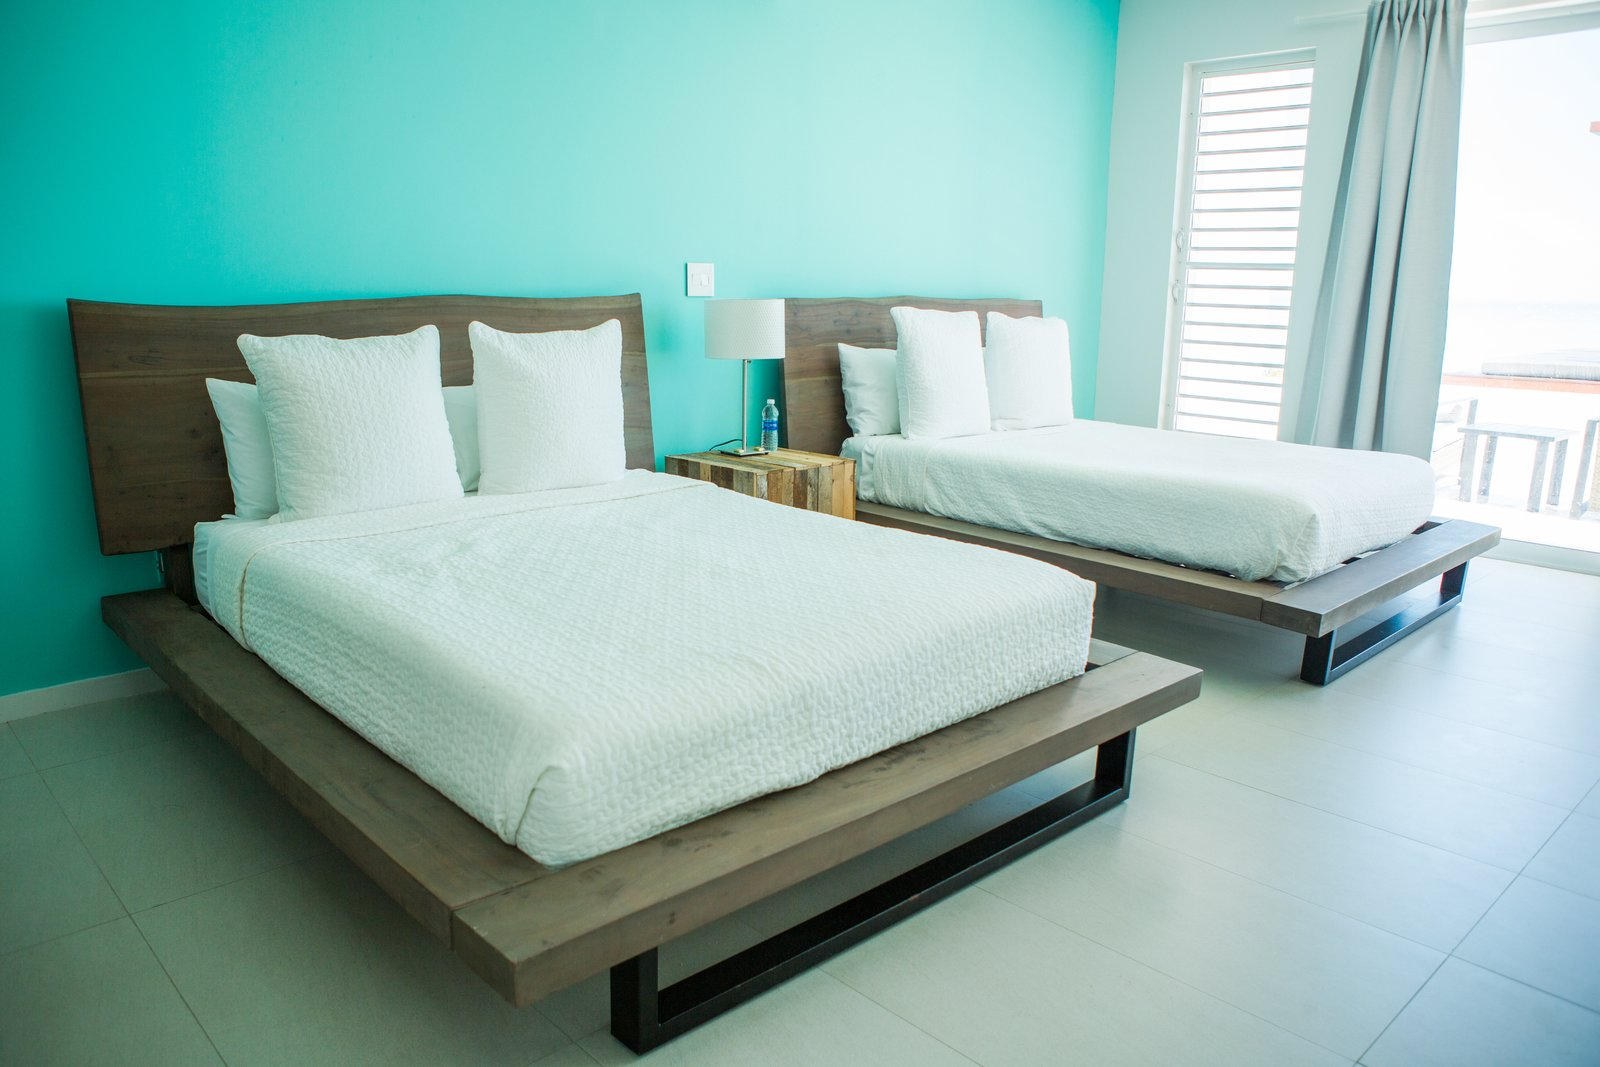 Tagged: Bedroom, Porcelain Tile Floor, Night Stands, Lamps, and Bed.  Tip of the Tail Villa by Zillow